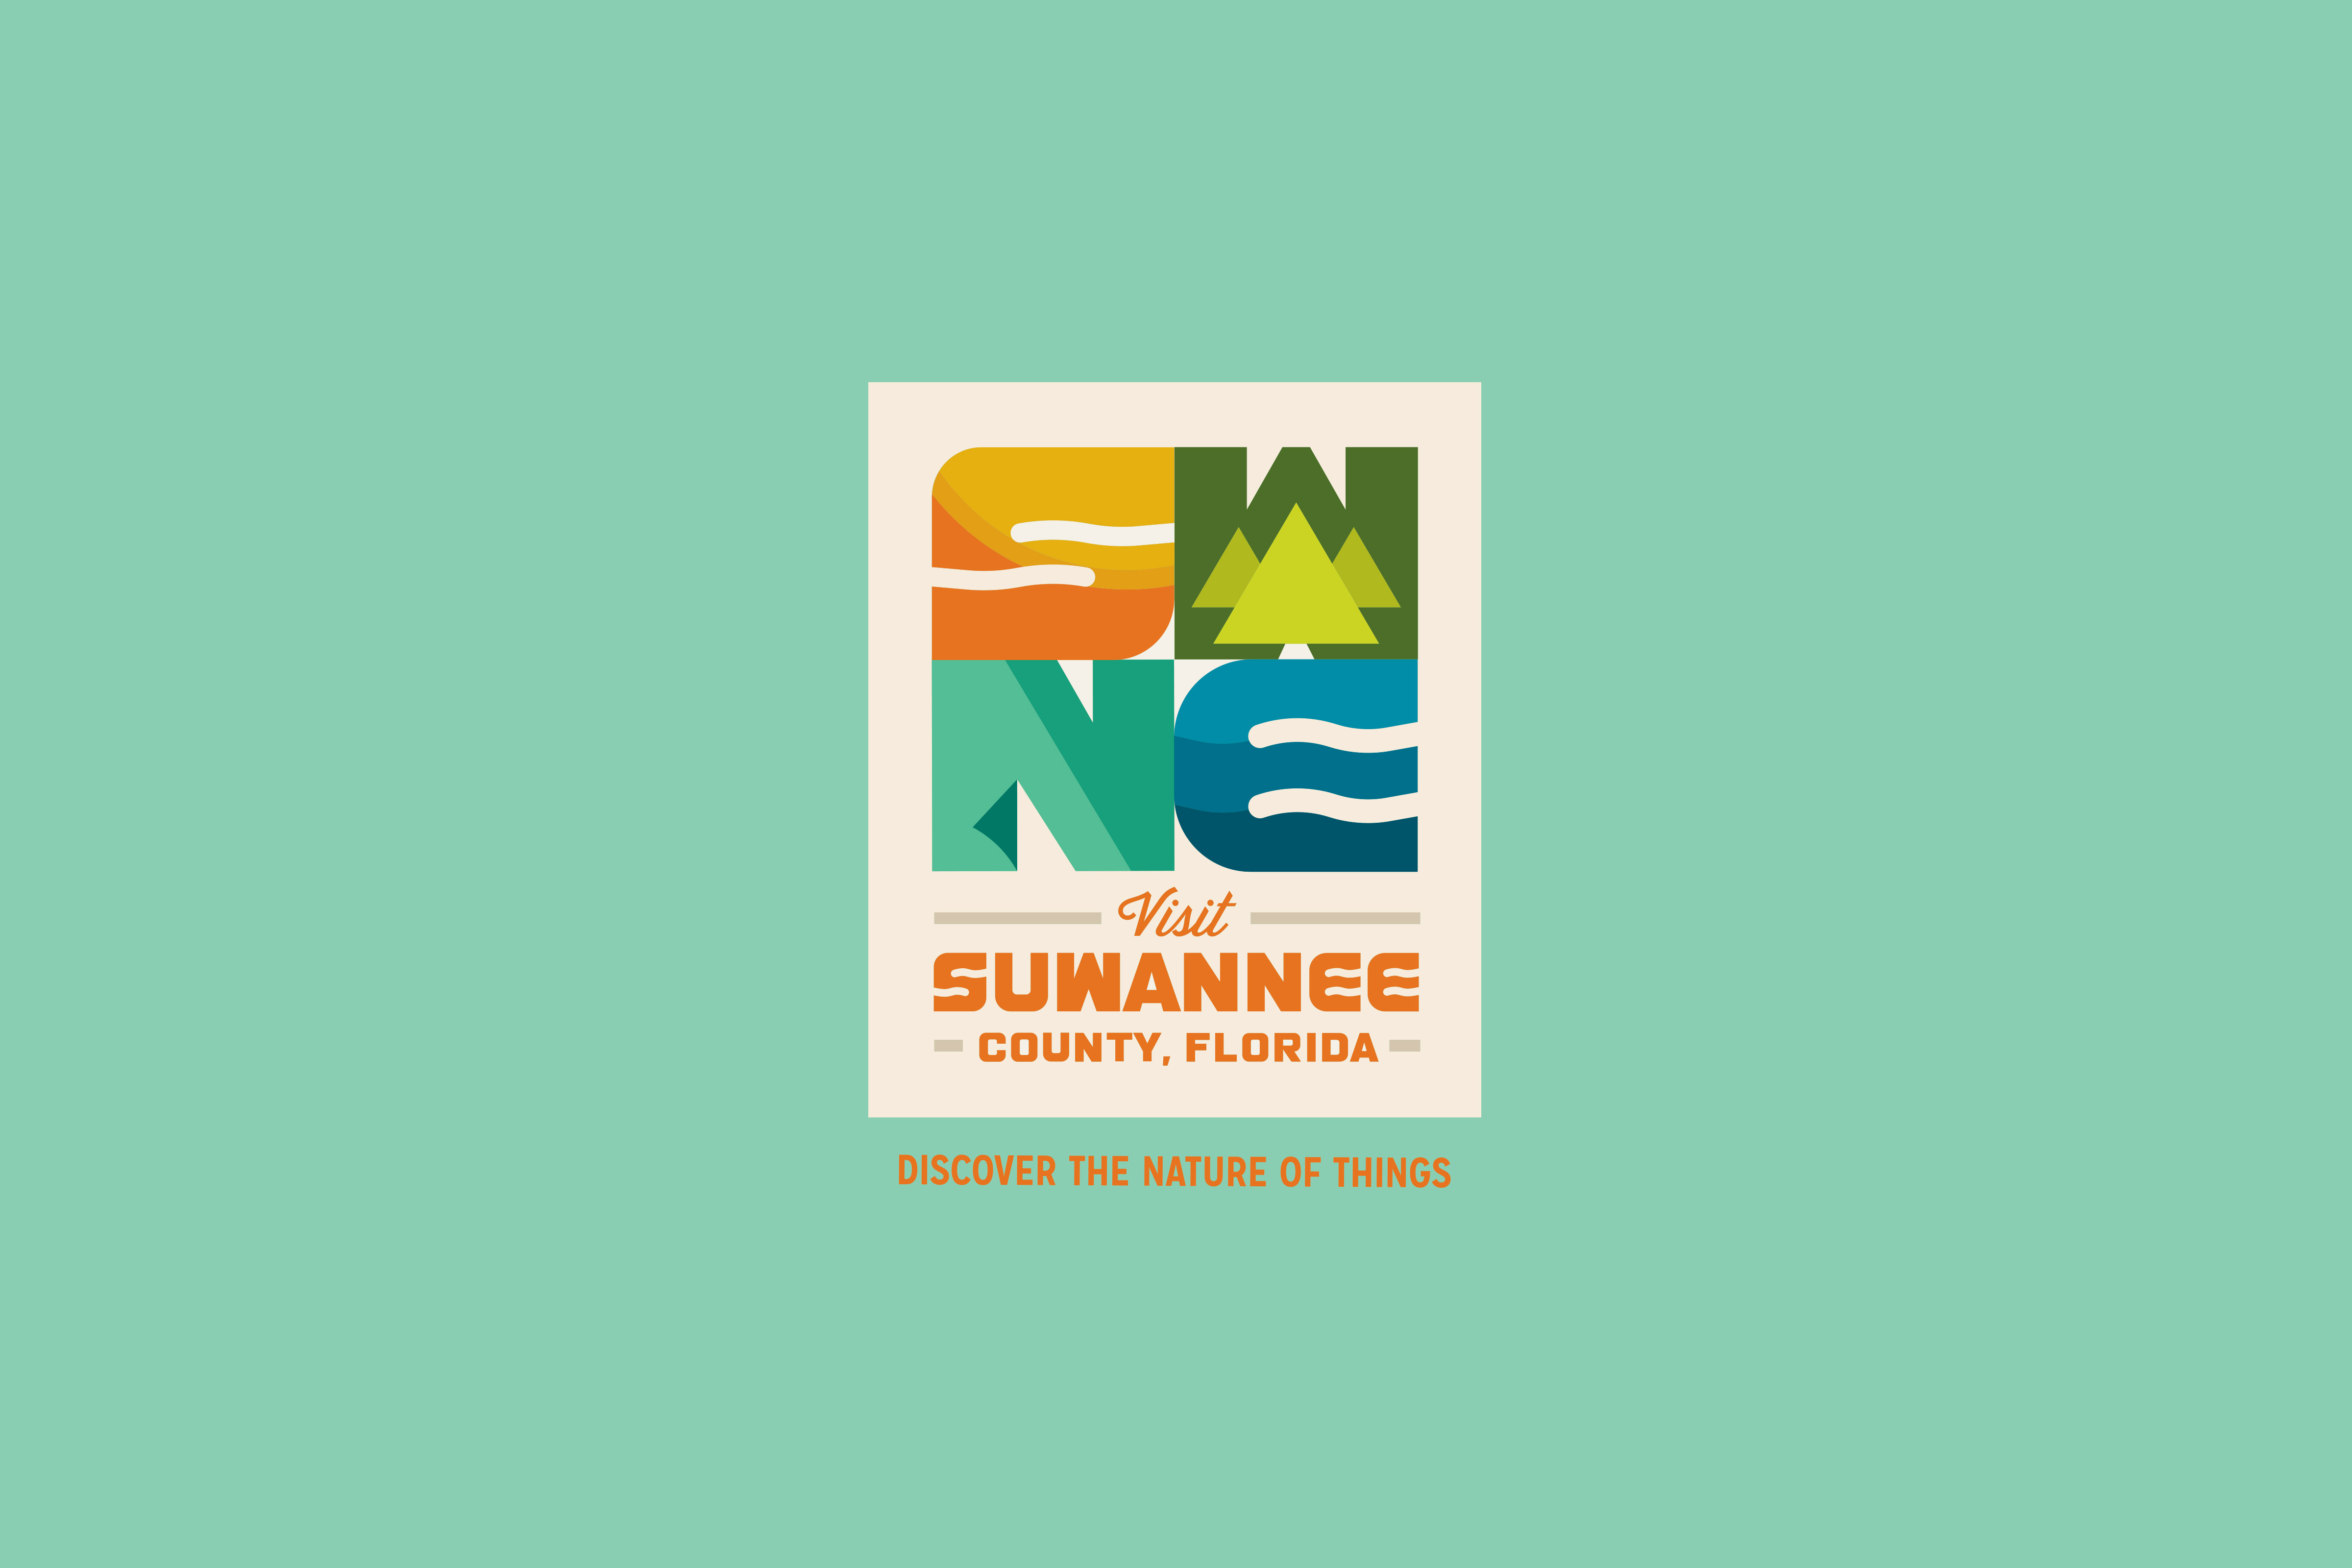 suwannee county logo stacked